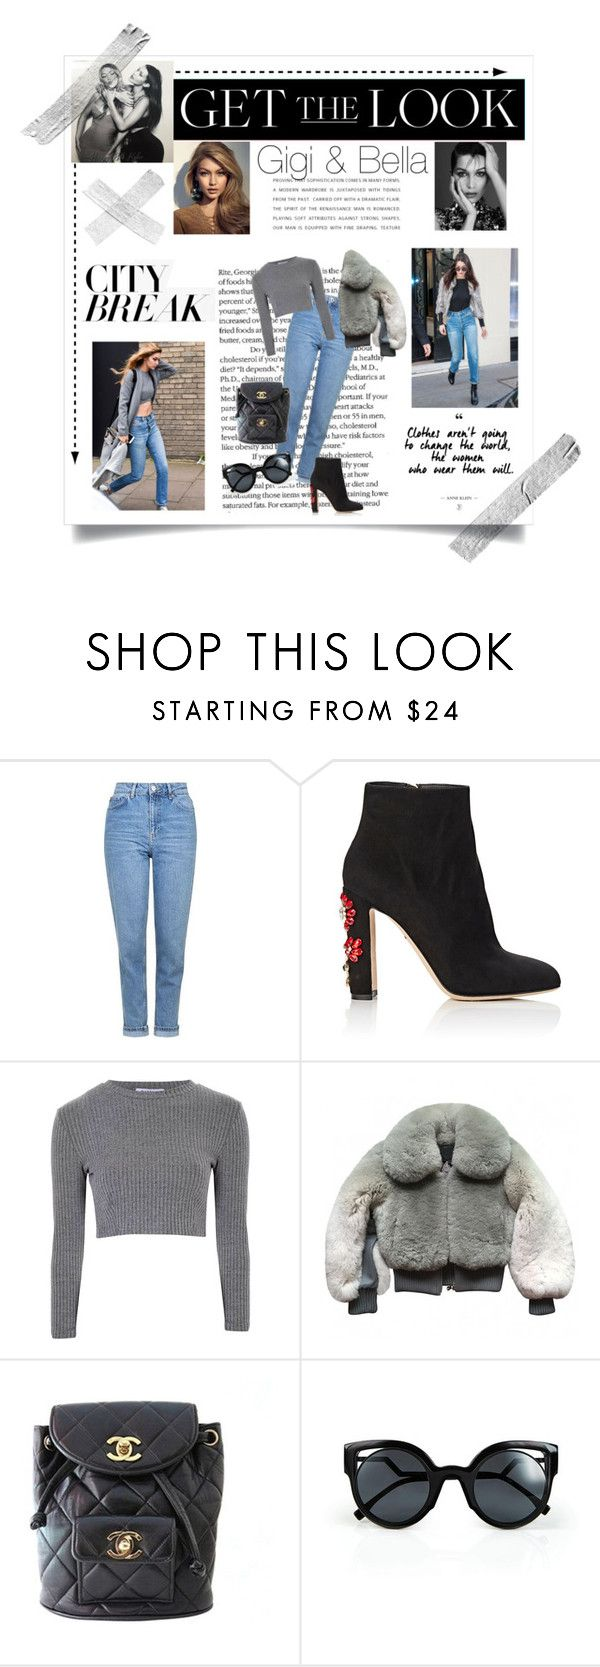 """""""Get the look:Gigi & Bella"""" by greekgodness ❤ liked on Polyvore featuring Topshop, Dolce&Gabbana, Glamorous, Marc Jacobs, Chanel, Fendi, GetTheLook and celebritysiblings"""